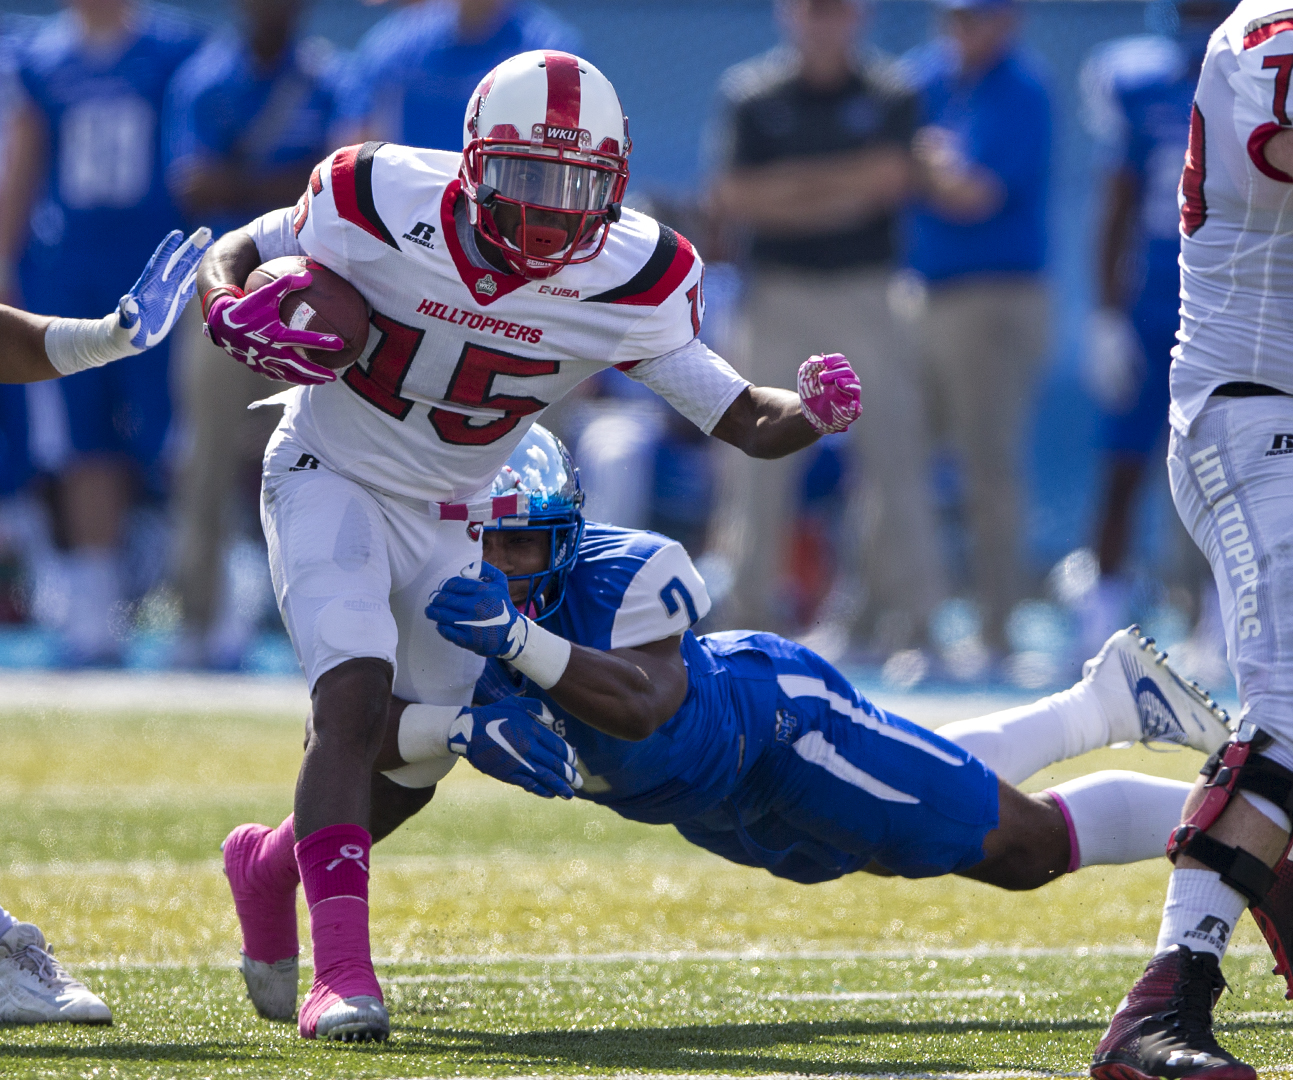 Senior wide receiver Nicholas Norris (15), runs through the defense before being tackled by MTSU's safety, Jovante Moffatt (7) during WKU's 44-43 win on Saturday, Oct. 15, at Johnny